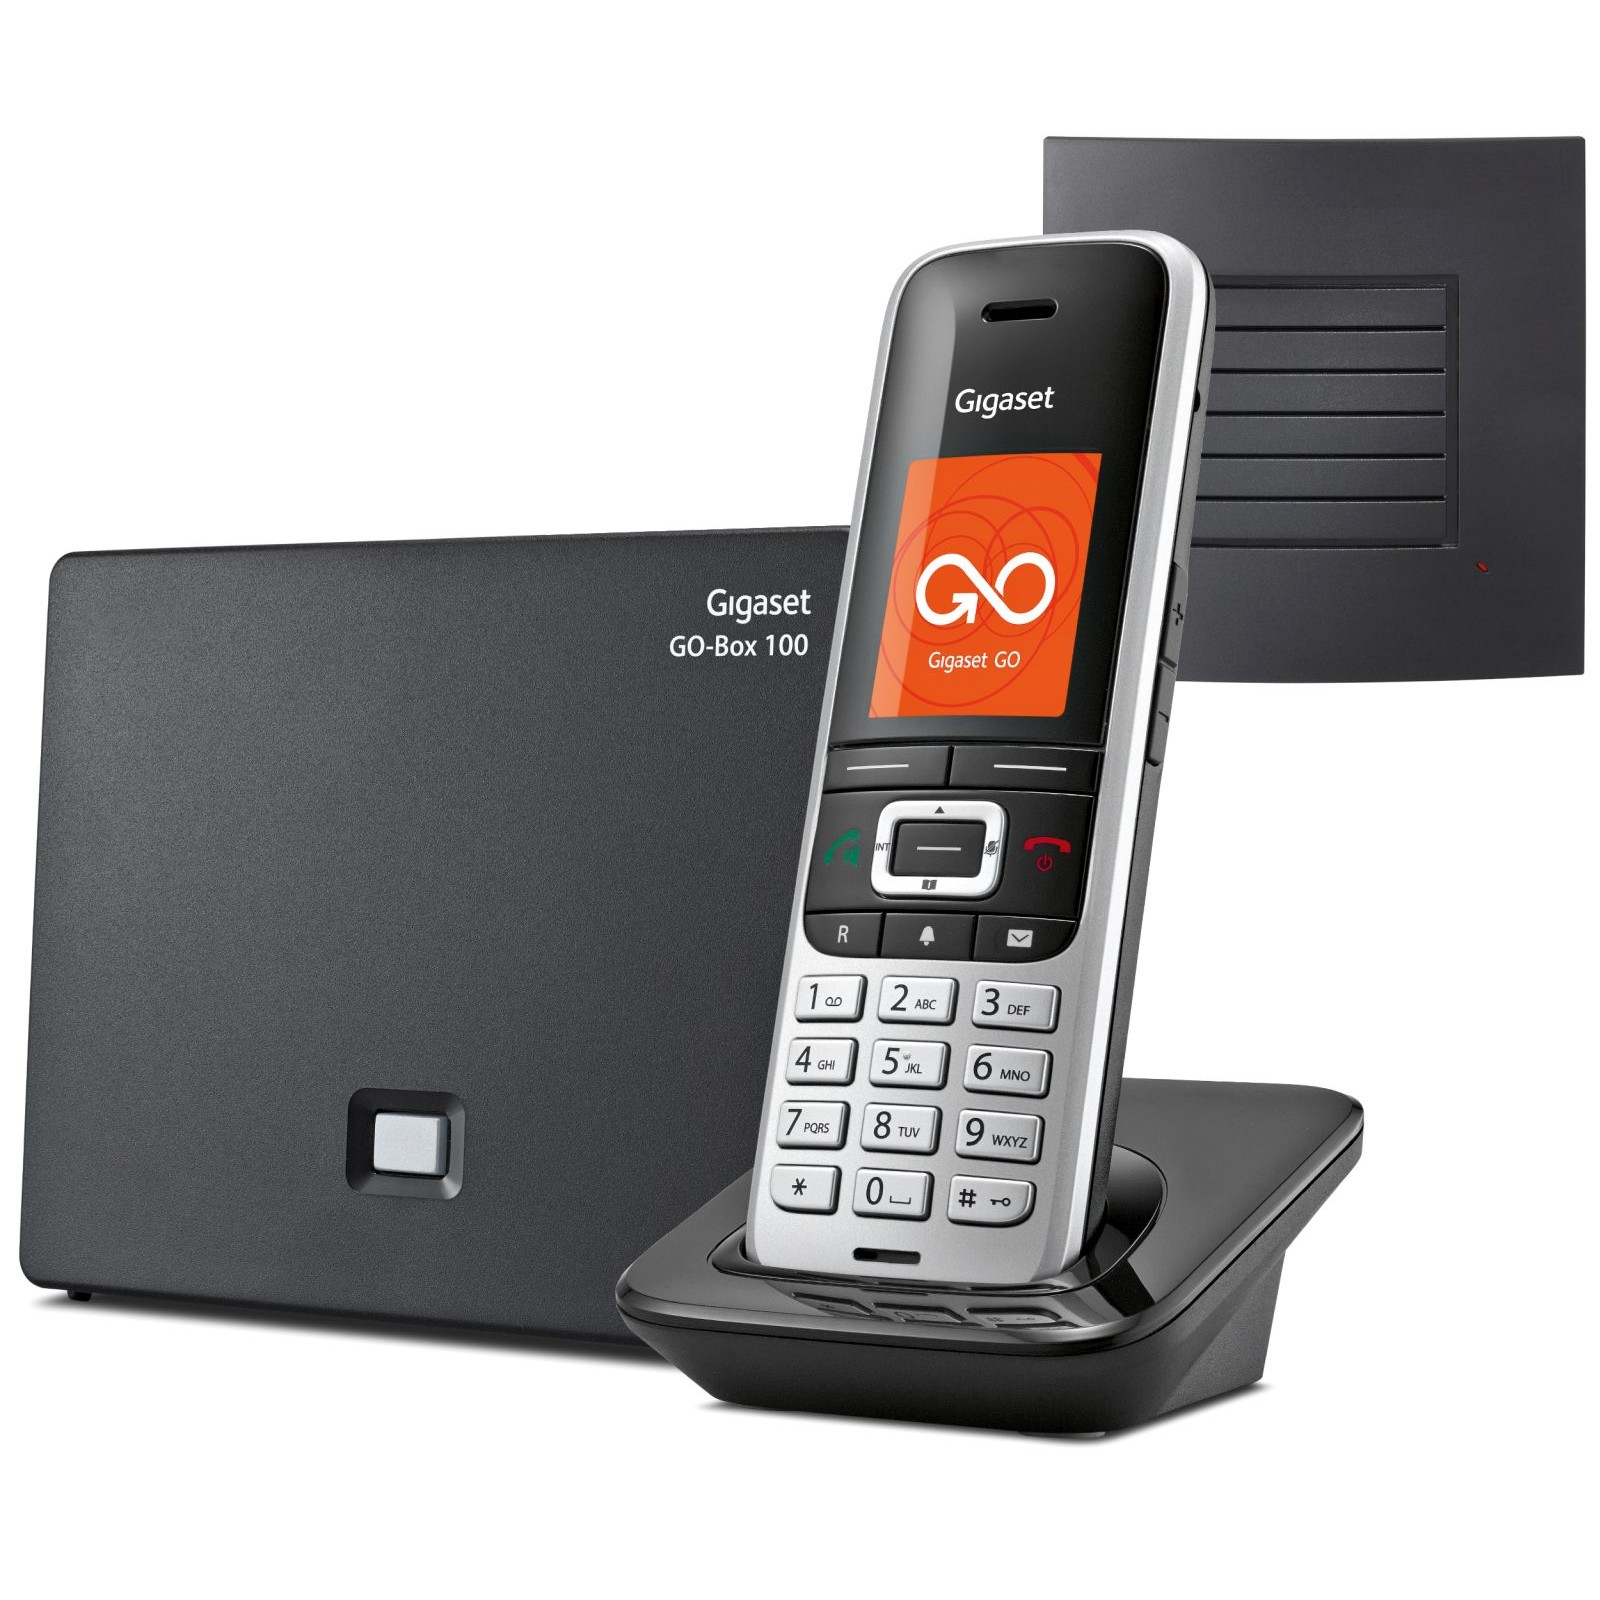 siemens gigaset s850a go long range cordless phone ligo. Black Bedroom Furniture Sets. Home Design Ideas